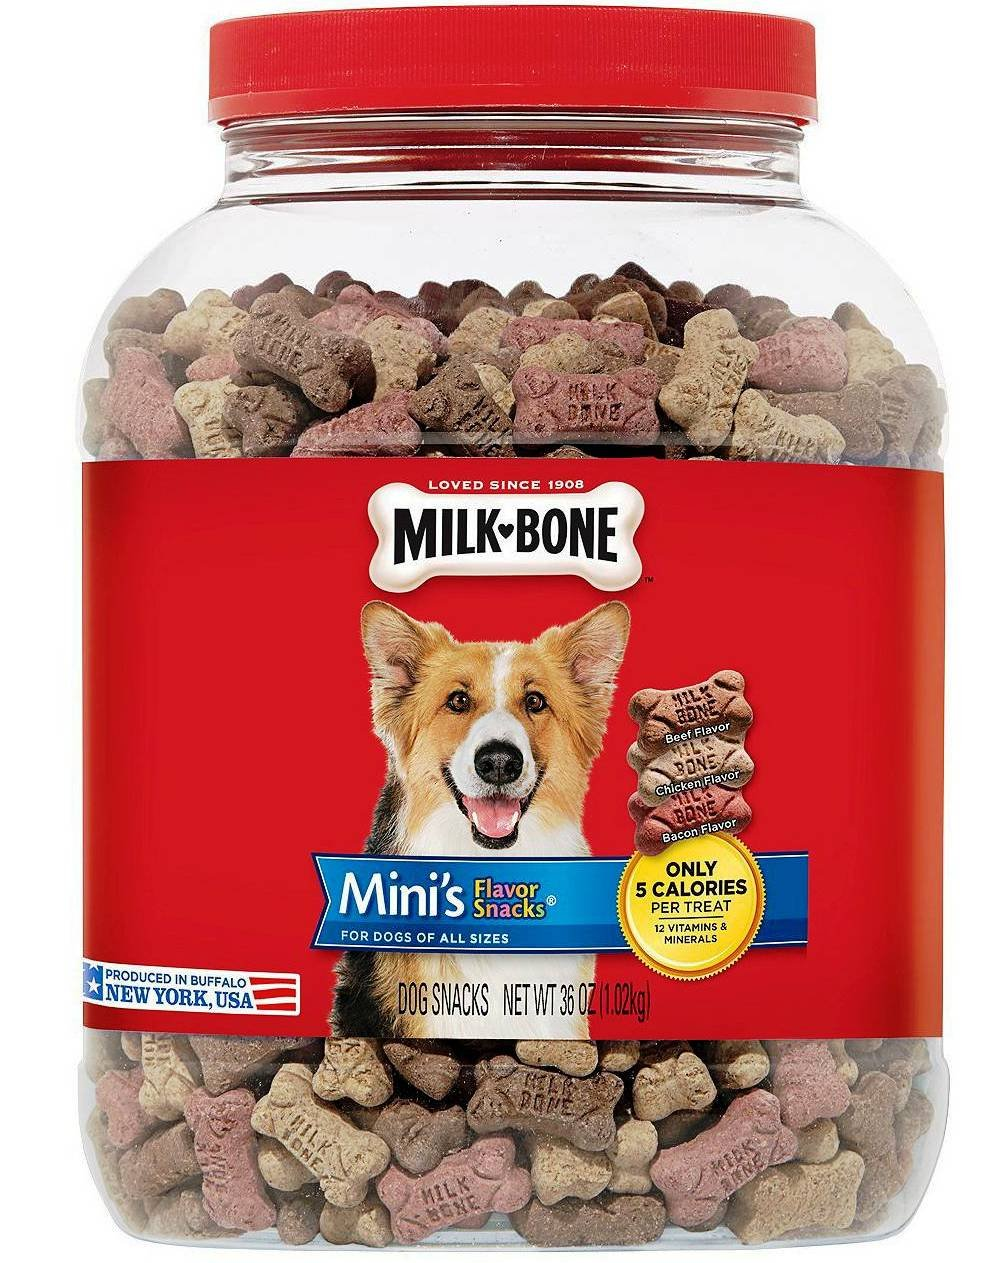 Milk-Bone Mini s Biscuits Flavor Snacks Canister 36 oz. 2 Canisters